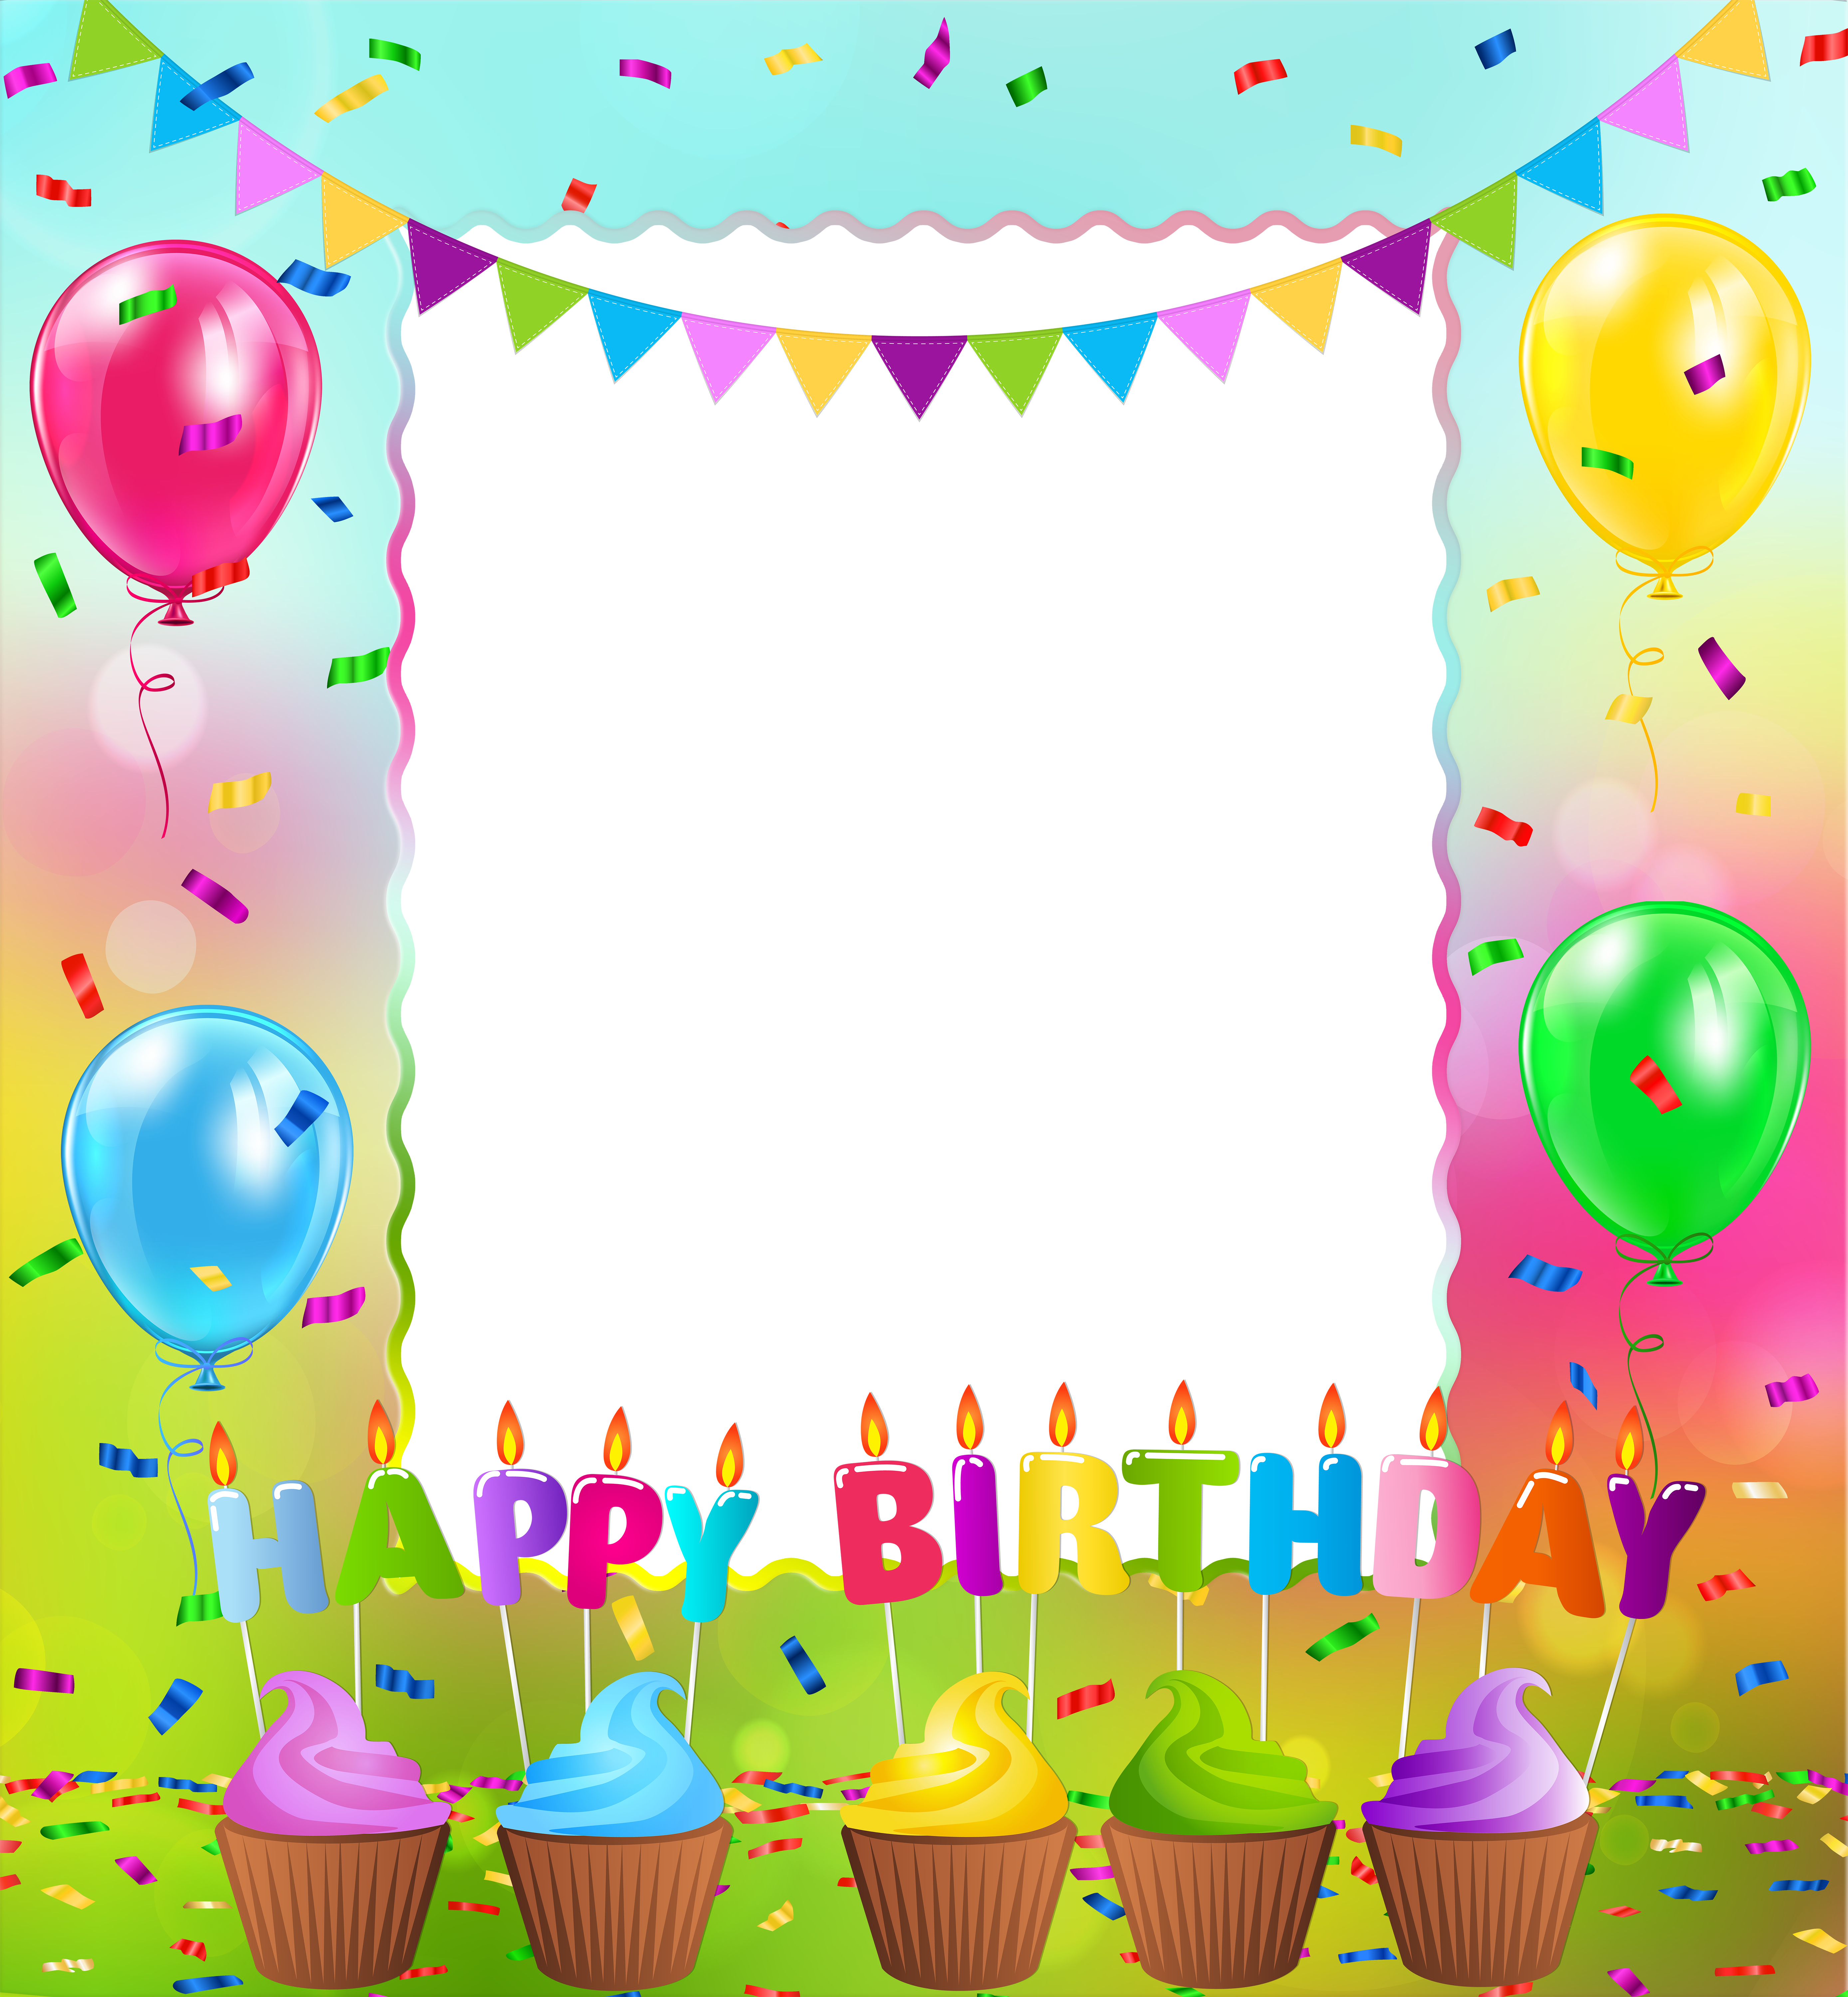 Birthday frame png. Happy gallery yopriceville high